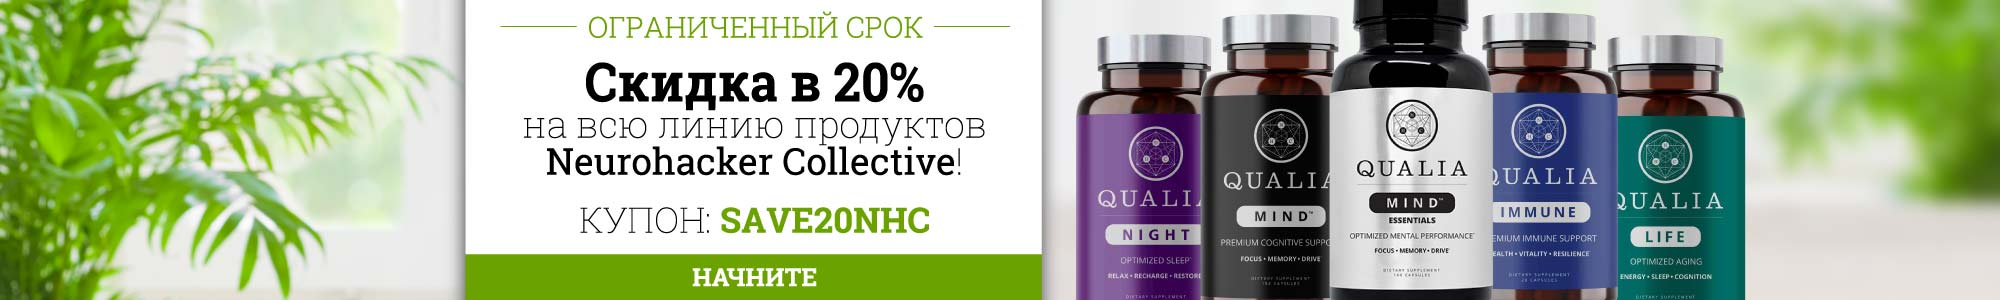 20% off entire Neurohacker Collective line. Use Coupon code: save20nhc Shop now. Valid until 03/31/2021.